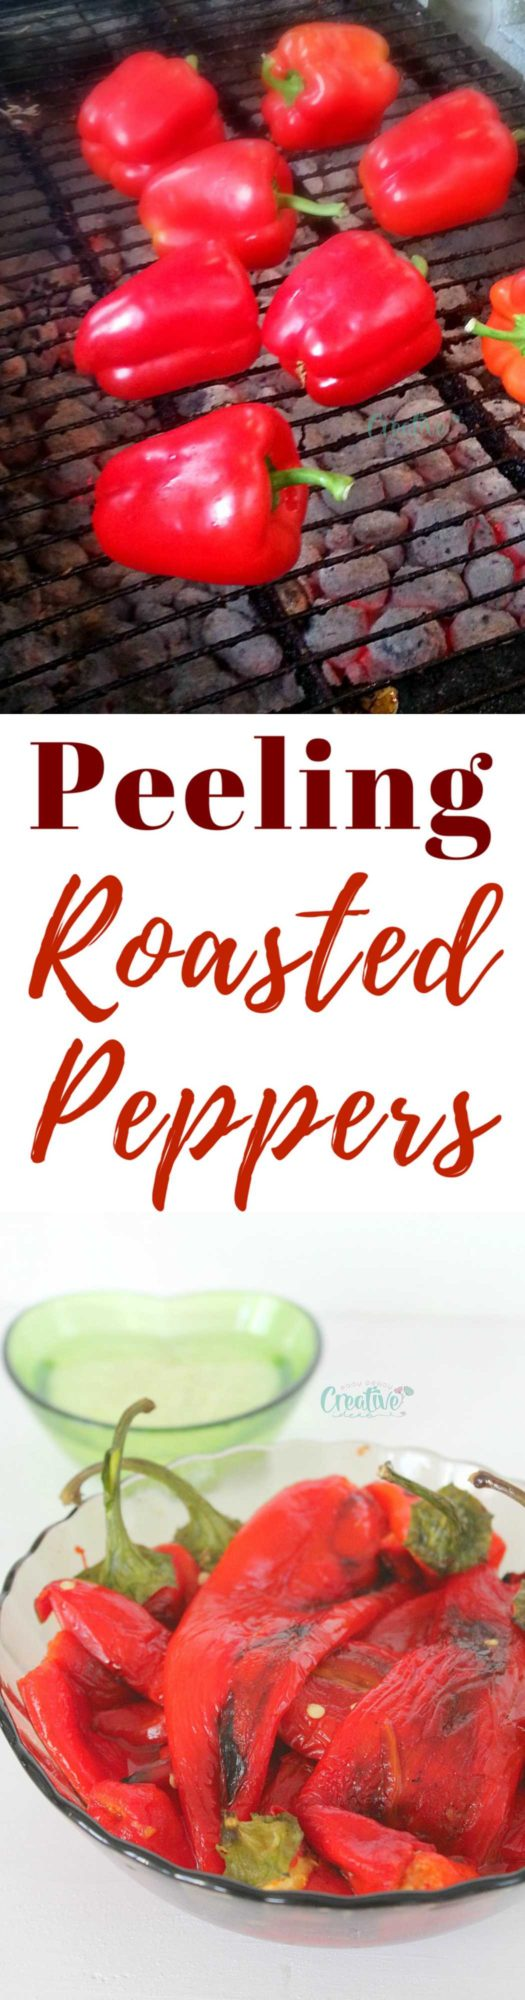 How to peel roasted peppers